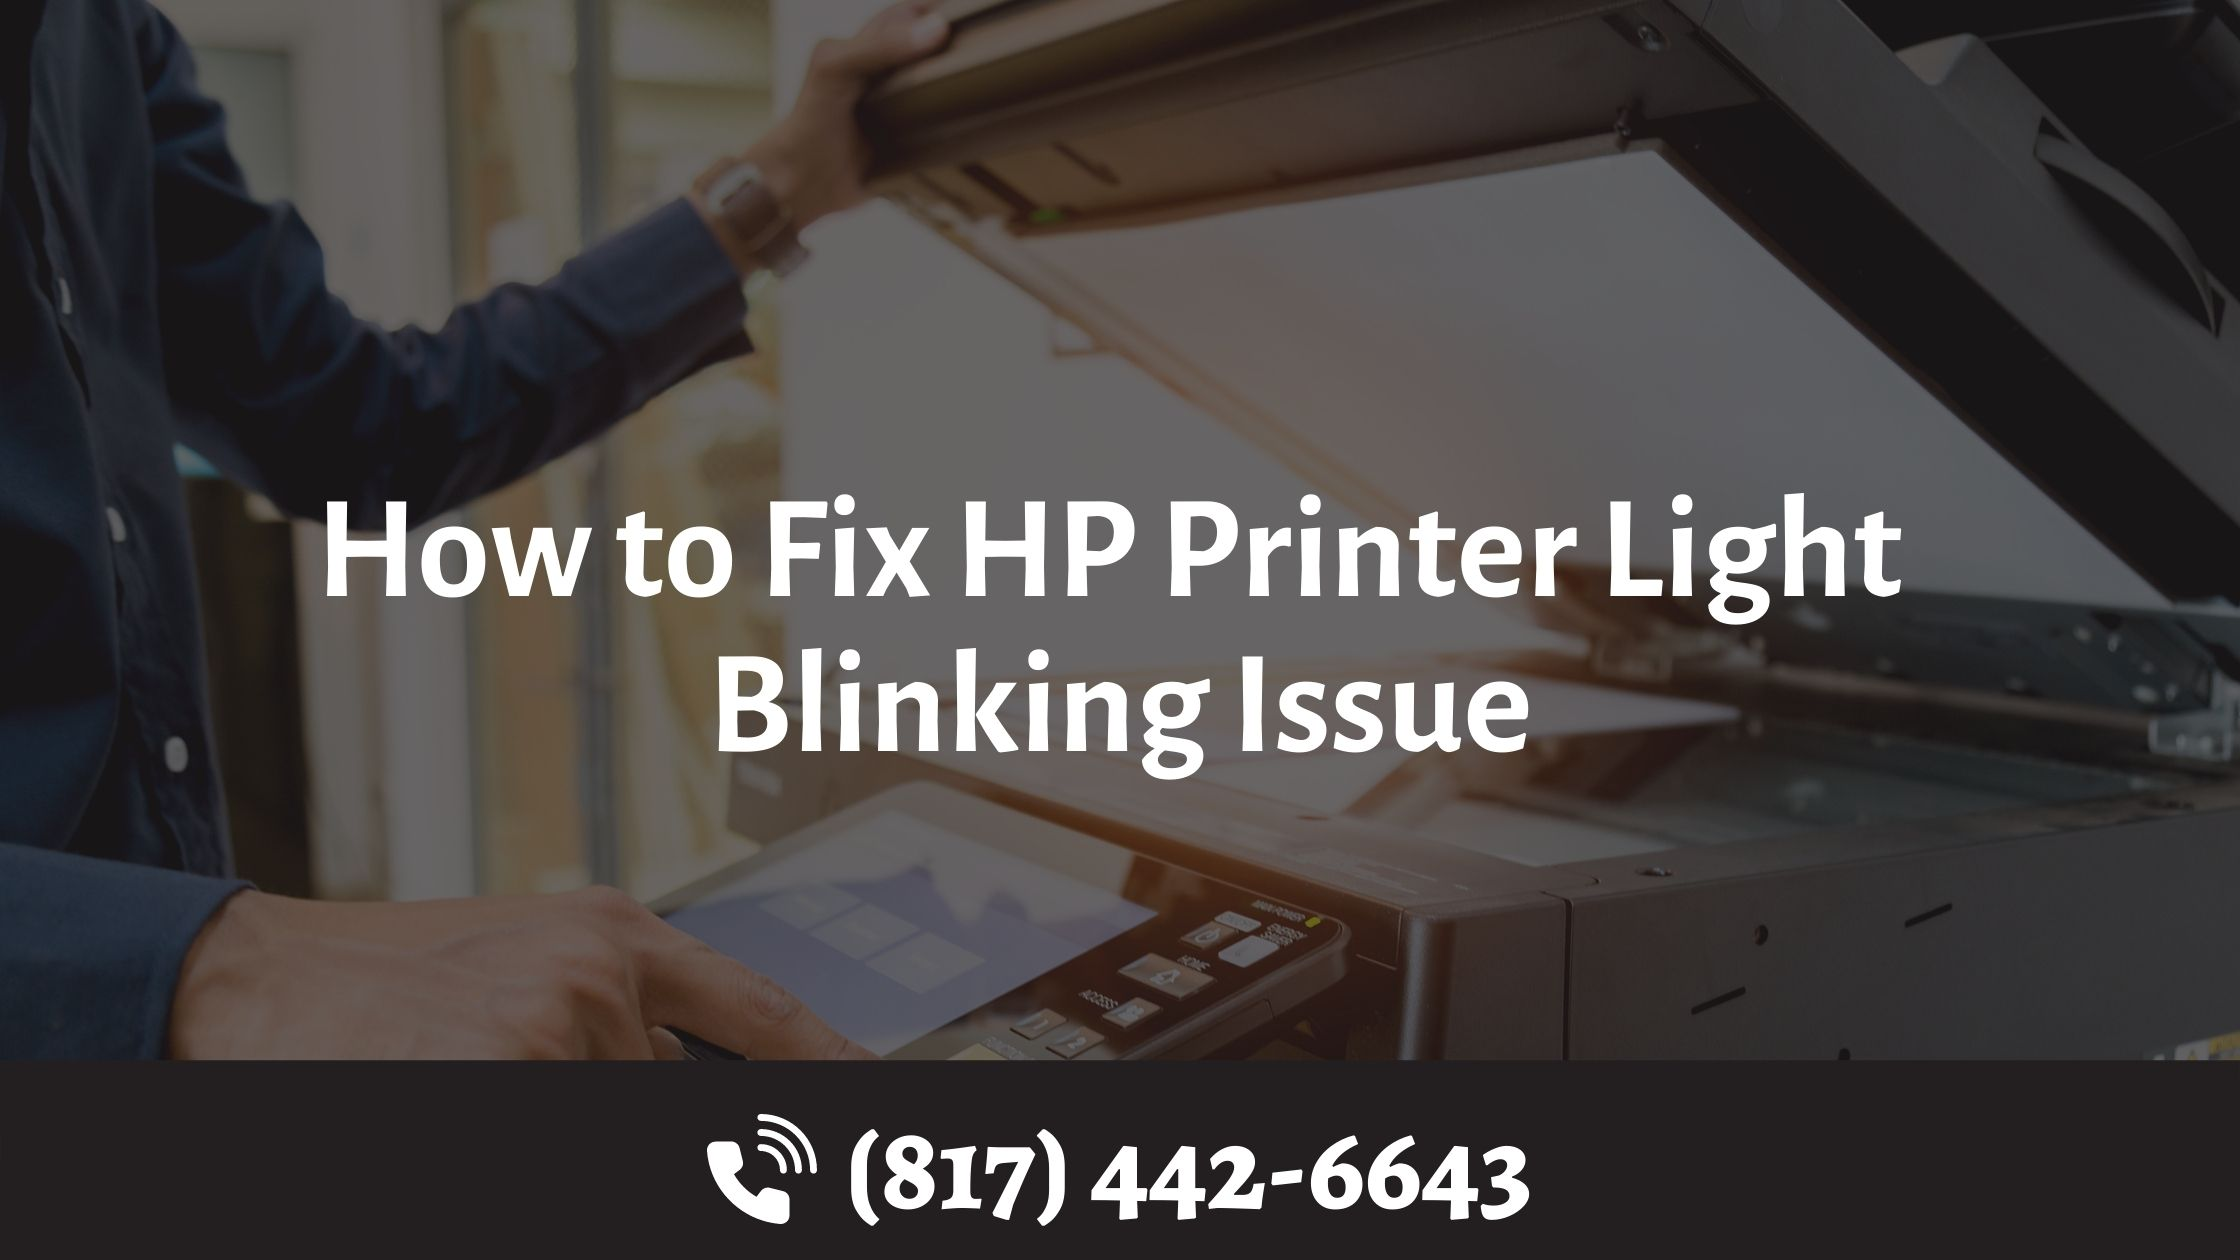 How to Fix HP Printer Light Blinking Issue